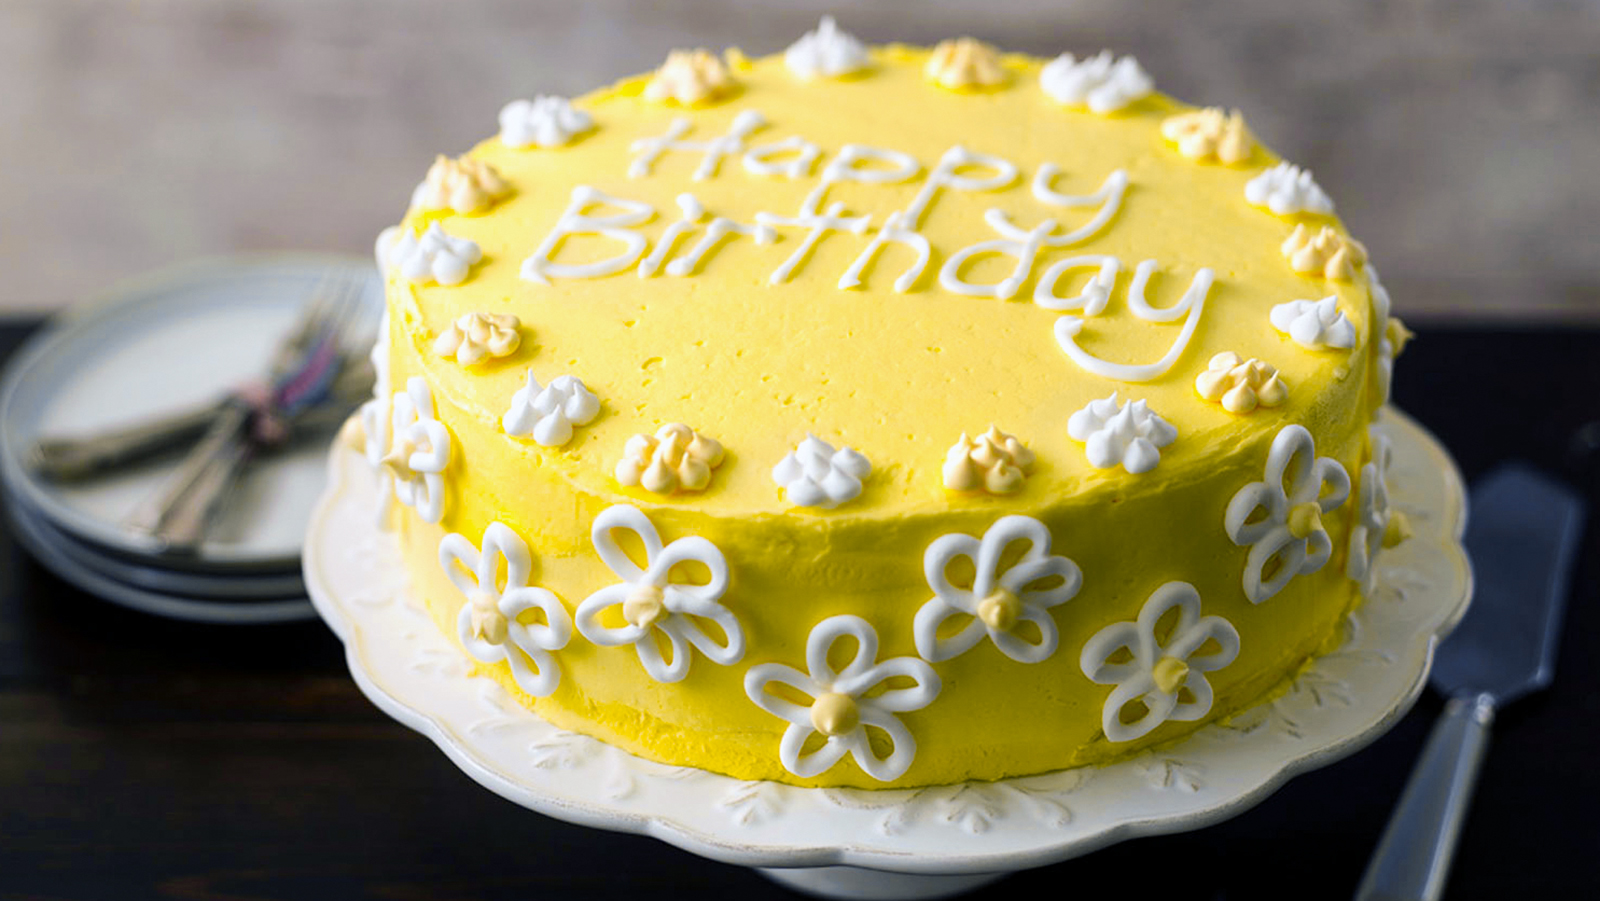 Pleasing Flowery Birthday Cake Recipe Bbc Food Funny Birthday Cards Online Alyptdamsfinfo